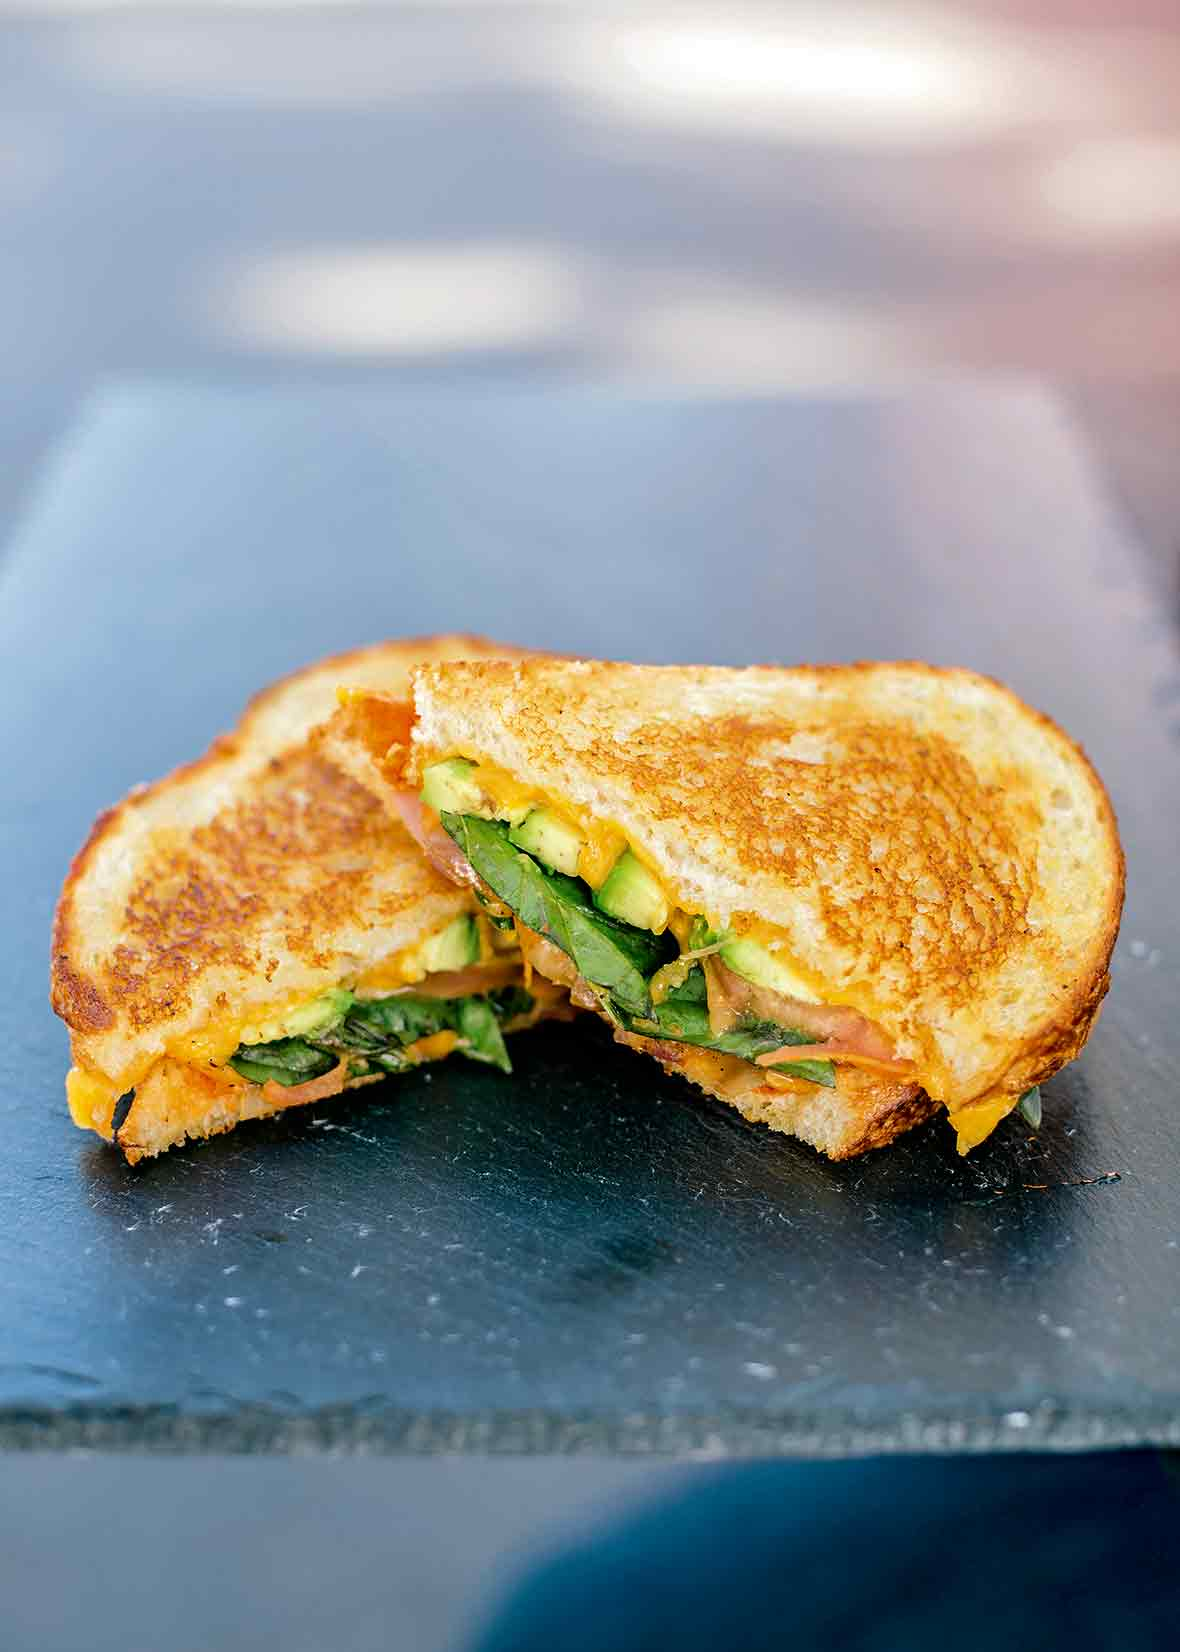 A veggie grilled cheese sandwich sliced in half on a glass platter